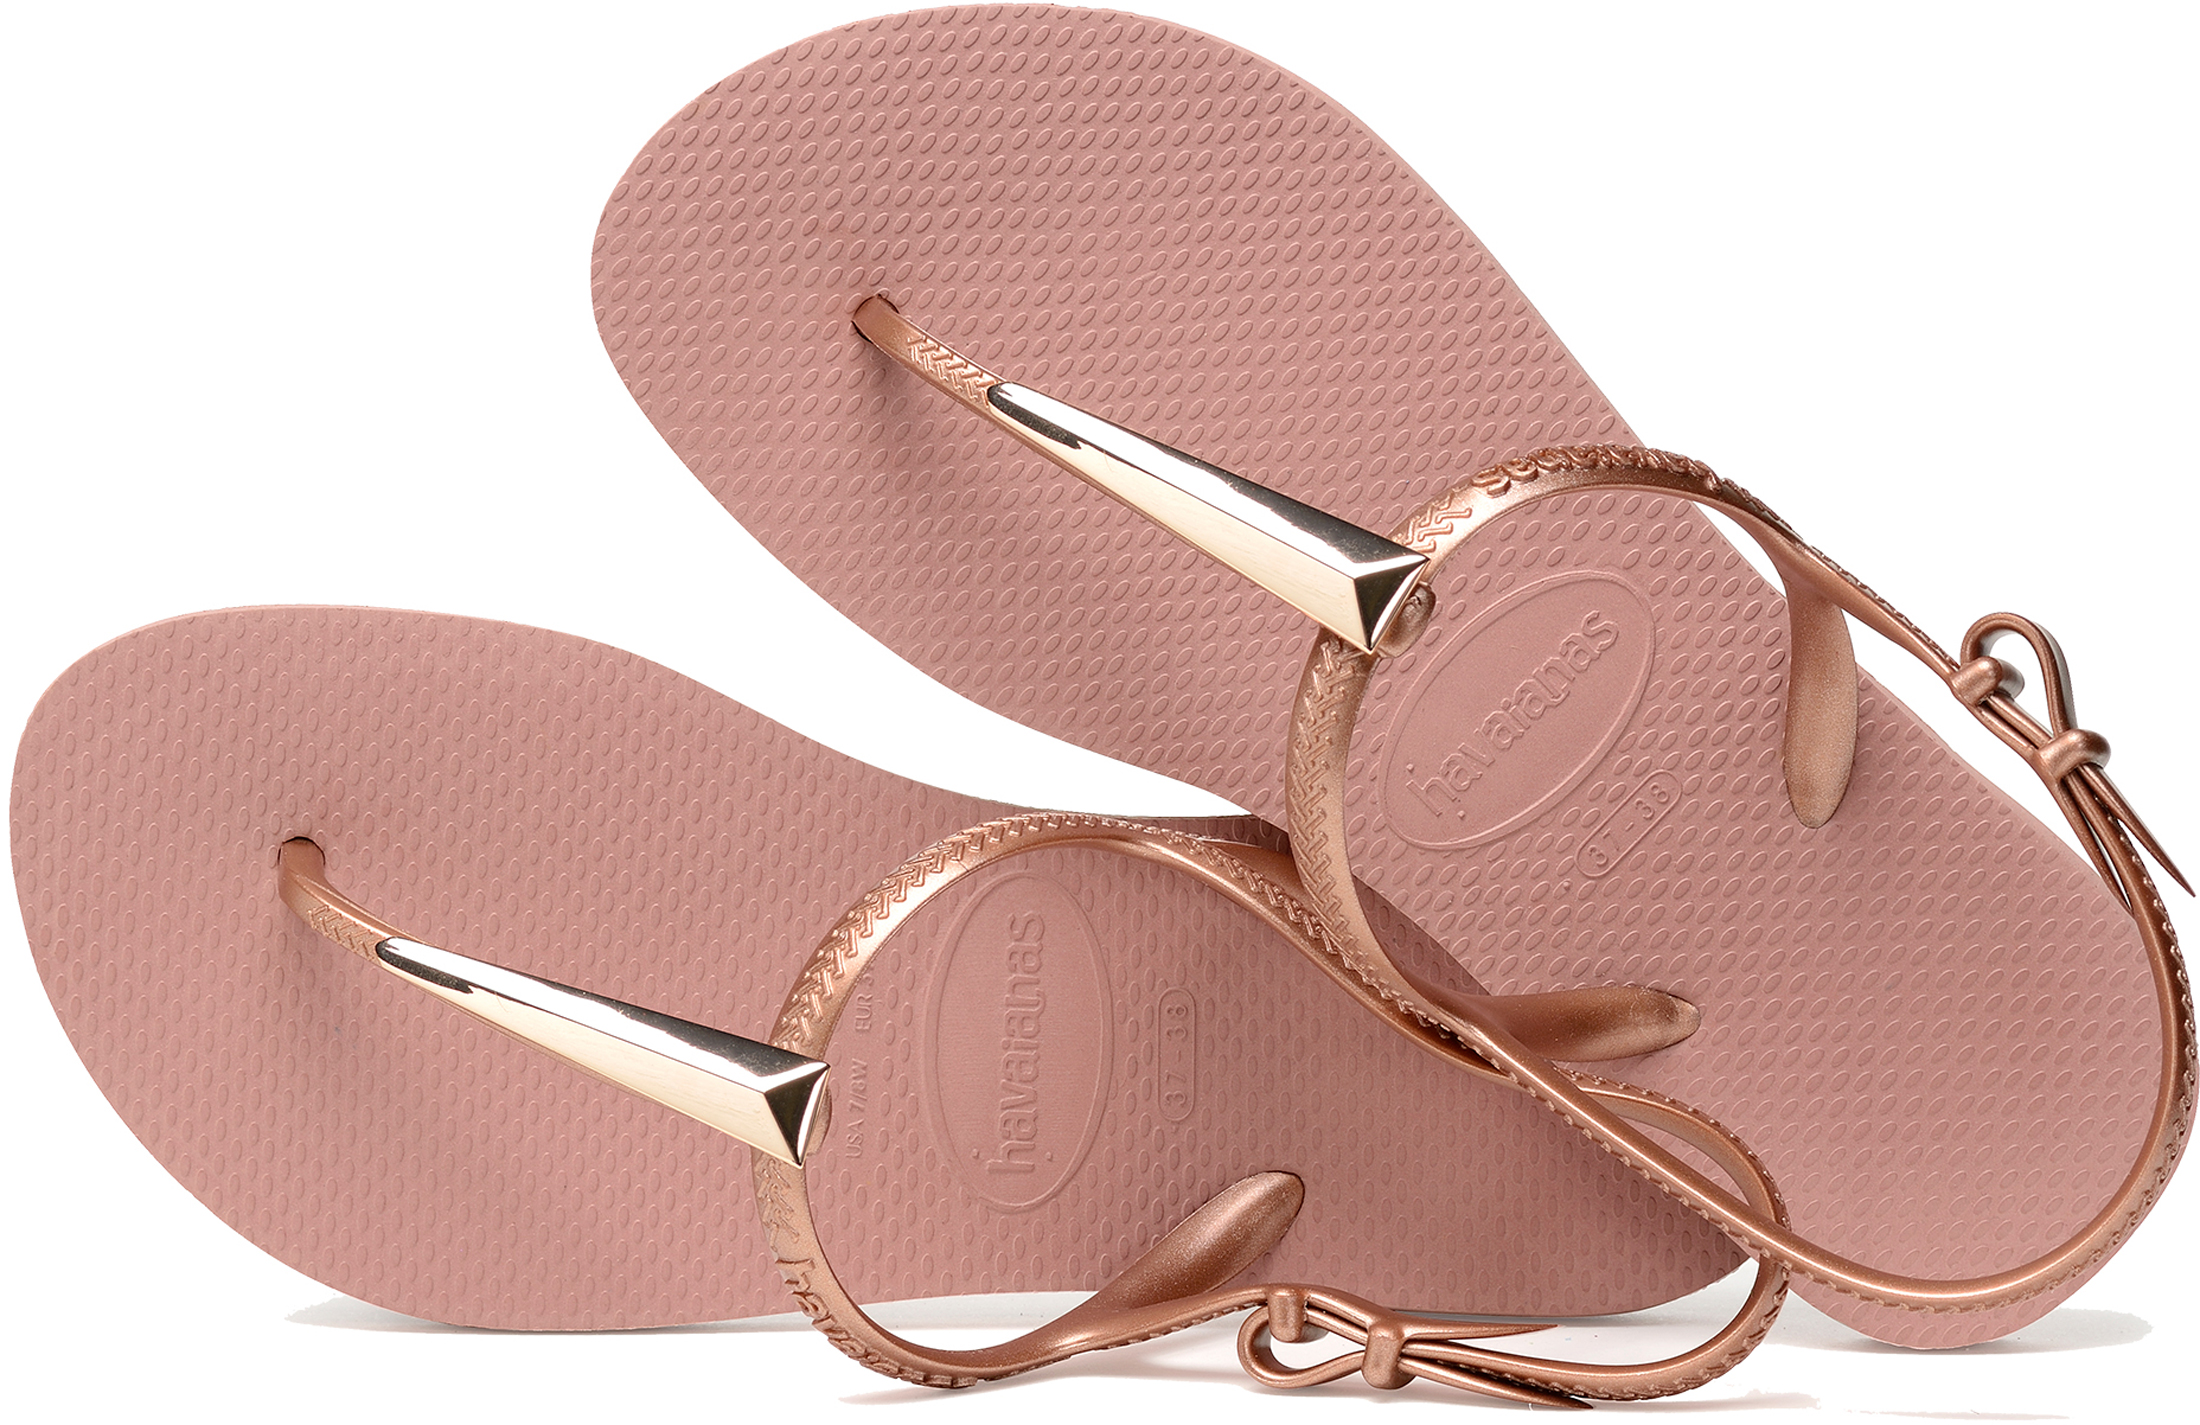 94ece6f8f03467 Havaianas Women s Freedom Maxi Sandals Metal Charm Uk3 4 Crocus Rose. About  this product. Picture 1 of 5  Picture 2 of 5  Picture 3 of 5 ...